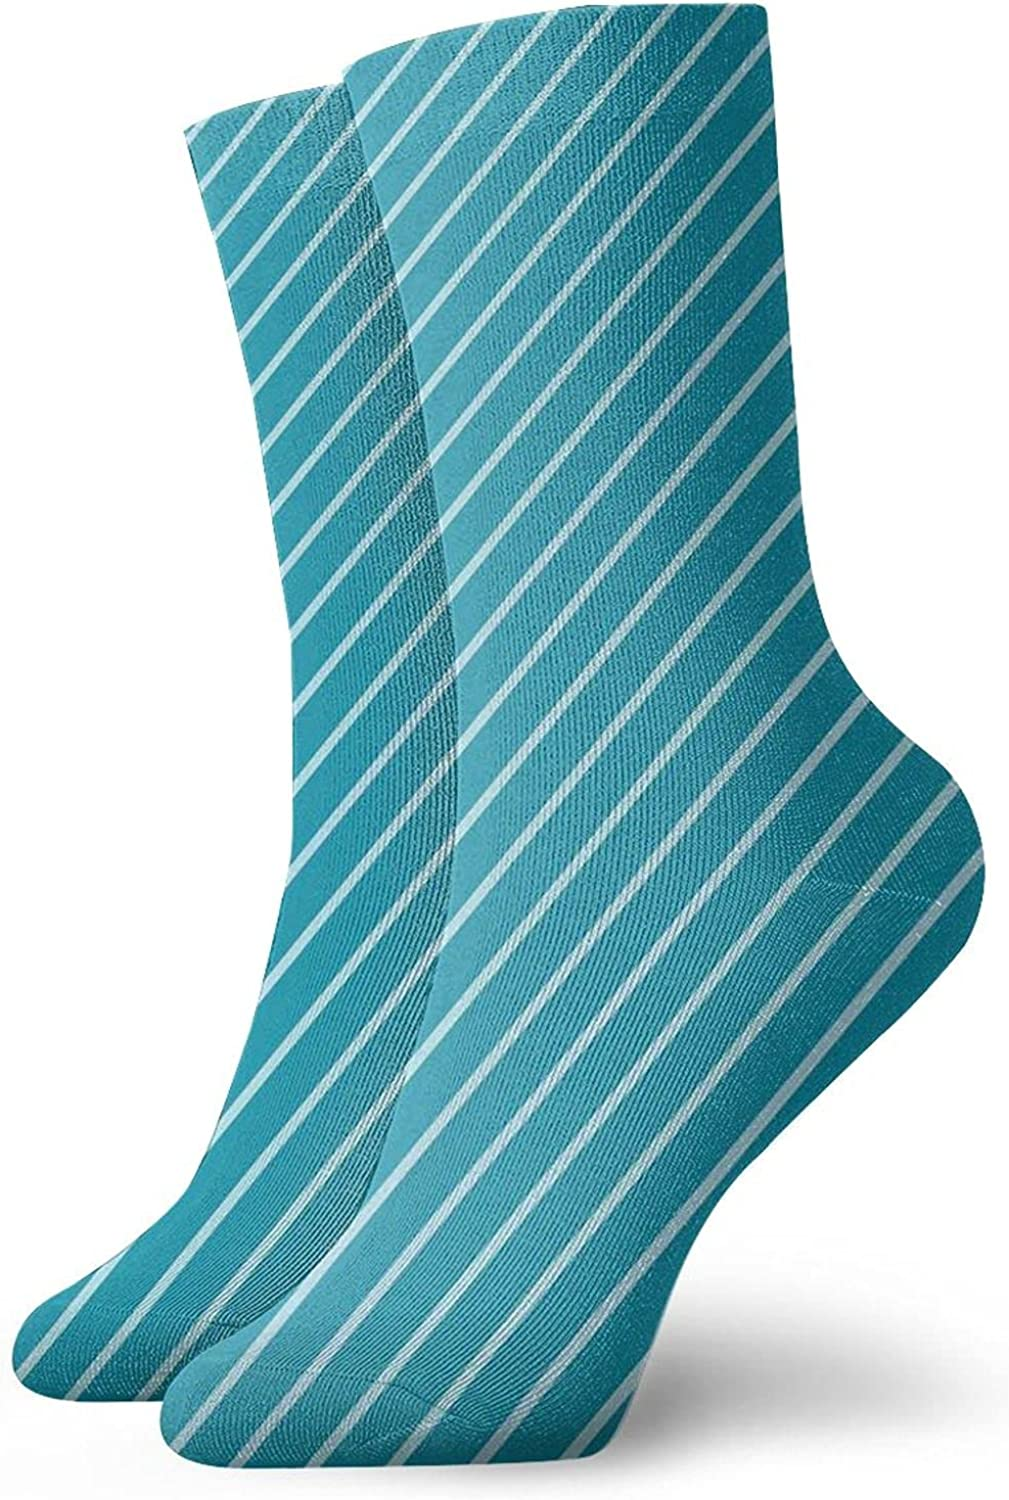 Compression High Socks-Diagonal Striped Pattern Mediterranean Cruise Colors Ocean Travel Adventure Best for Running,Athletic,Hiking,Travel,Flight